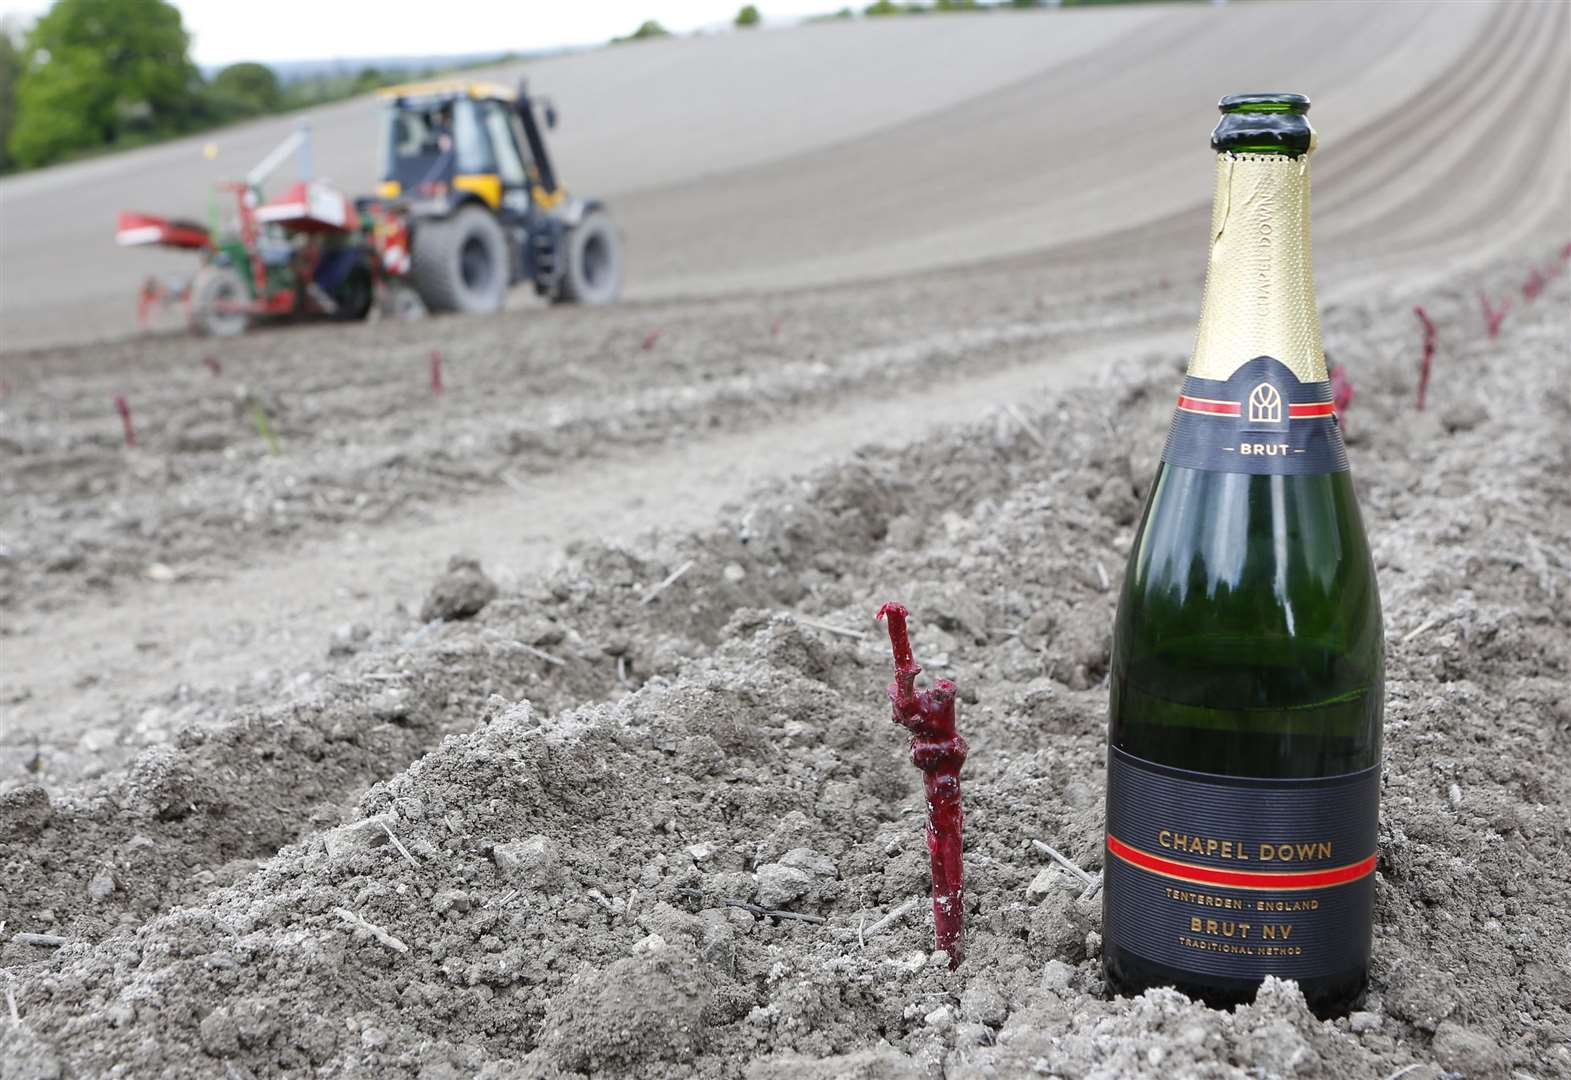 England's largest vineyard planted in Kent